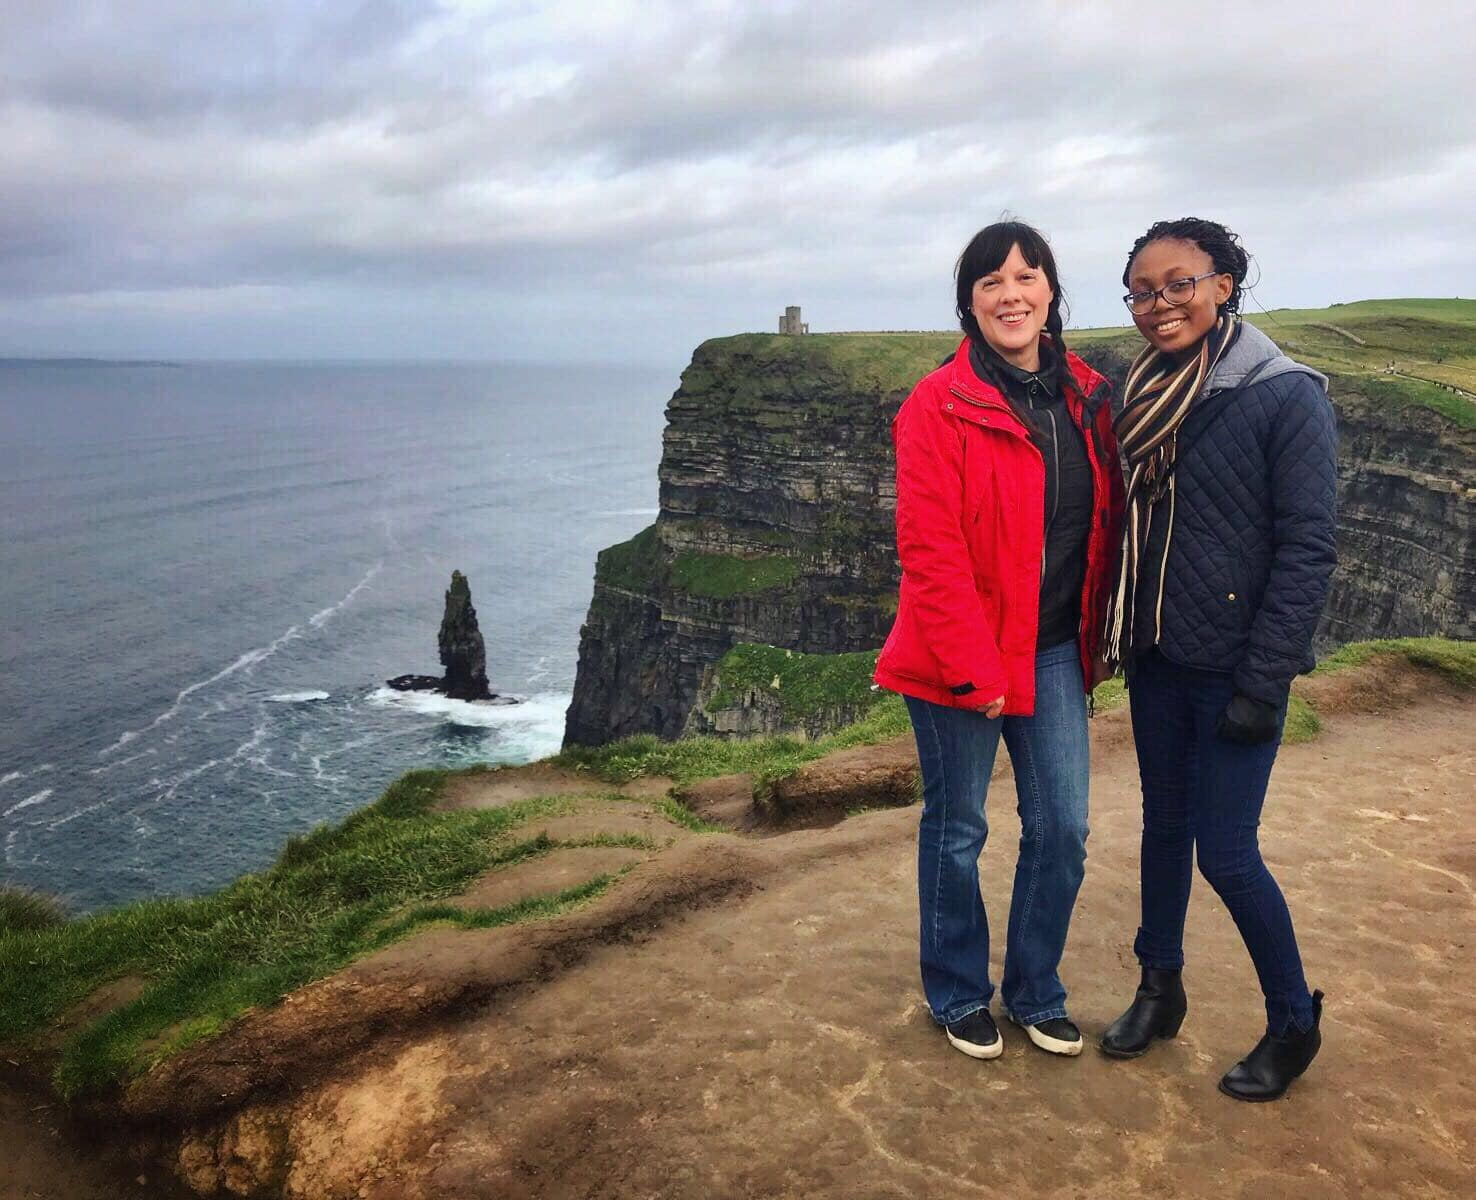 Tips for visiting Ireland for the first time